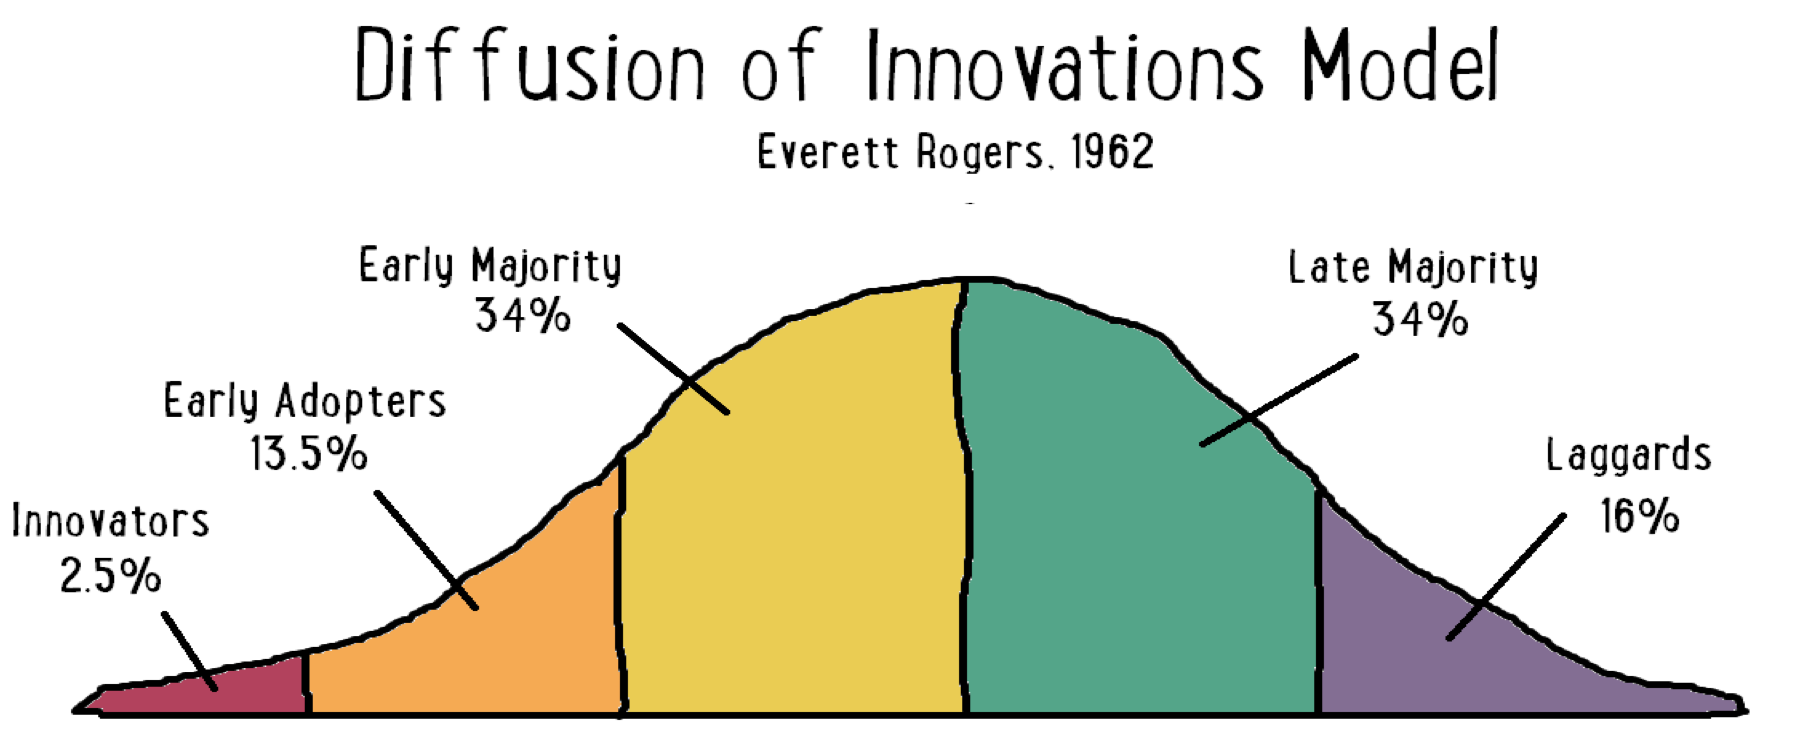 early adopters - diffusion of innovations model